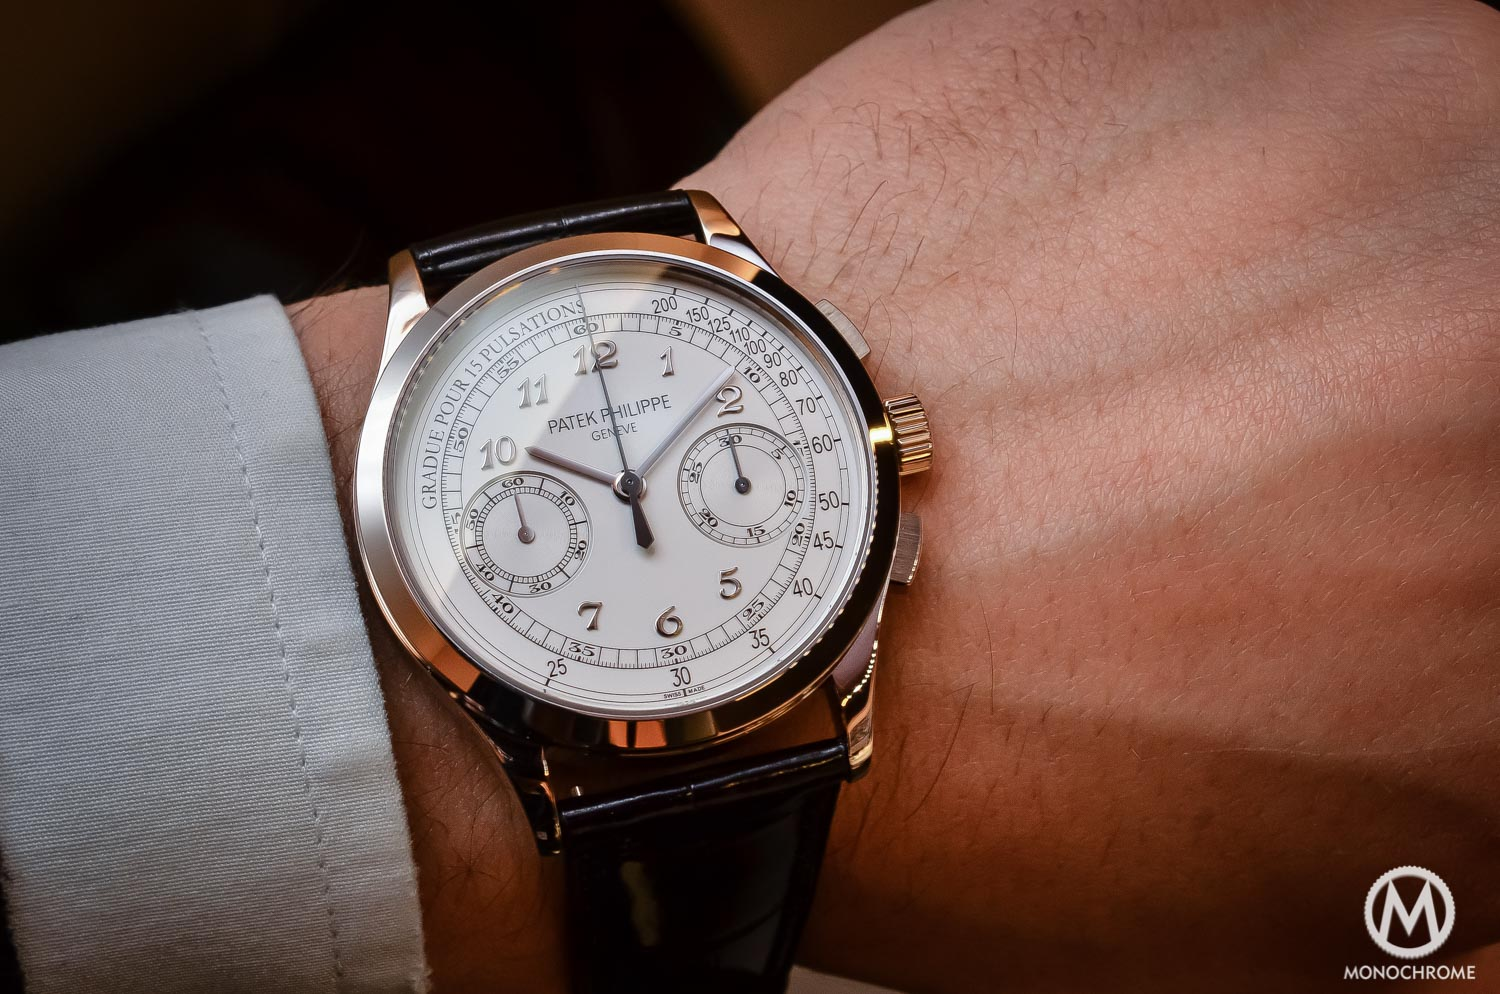 P Philippe Watch Why The Patek Philippe 5170g Chronograph Is Such A Cool Watch